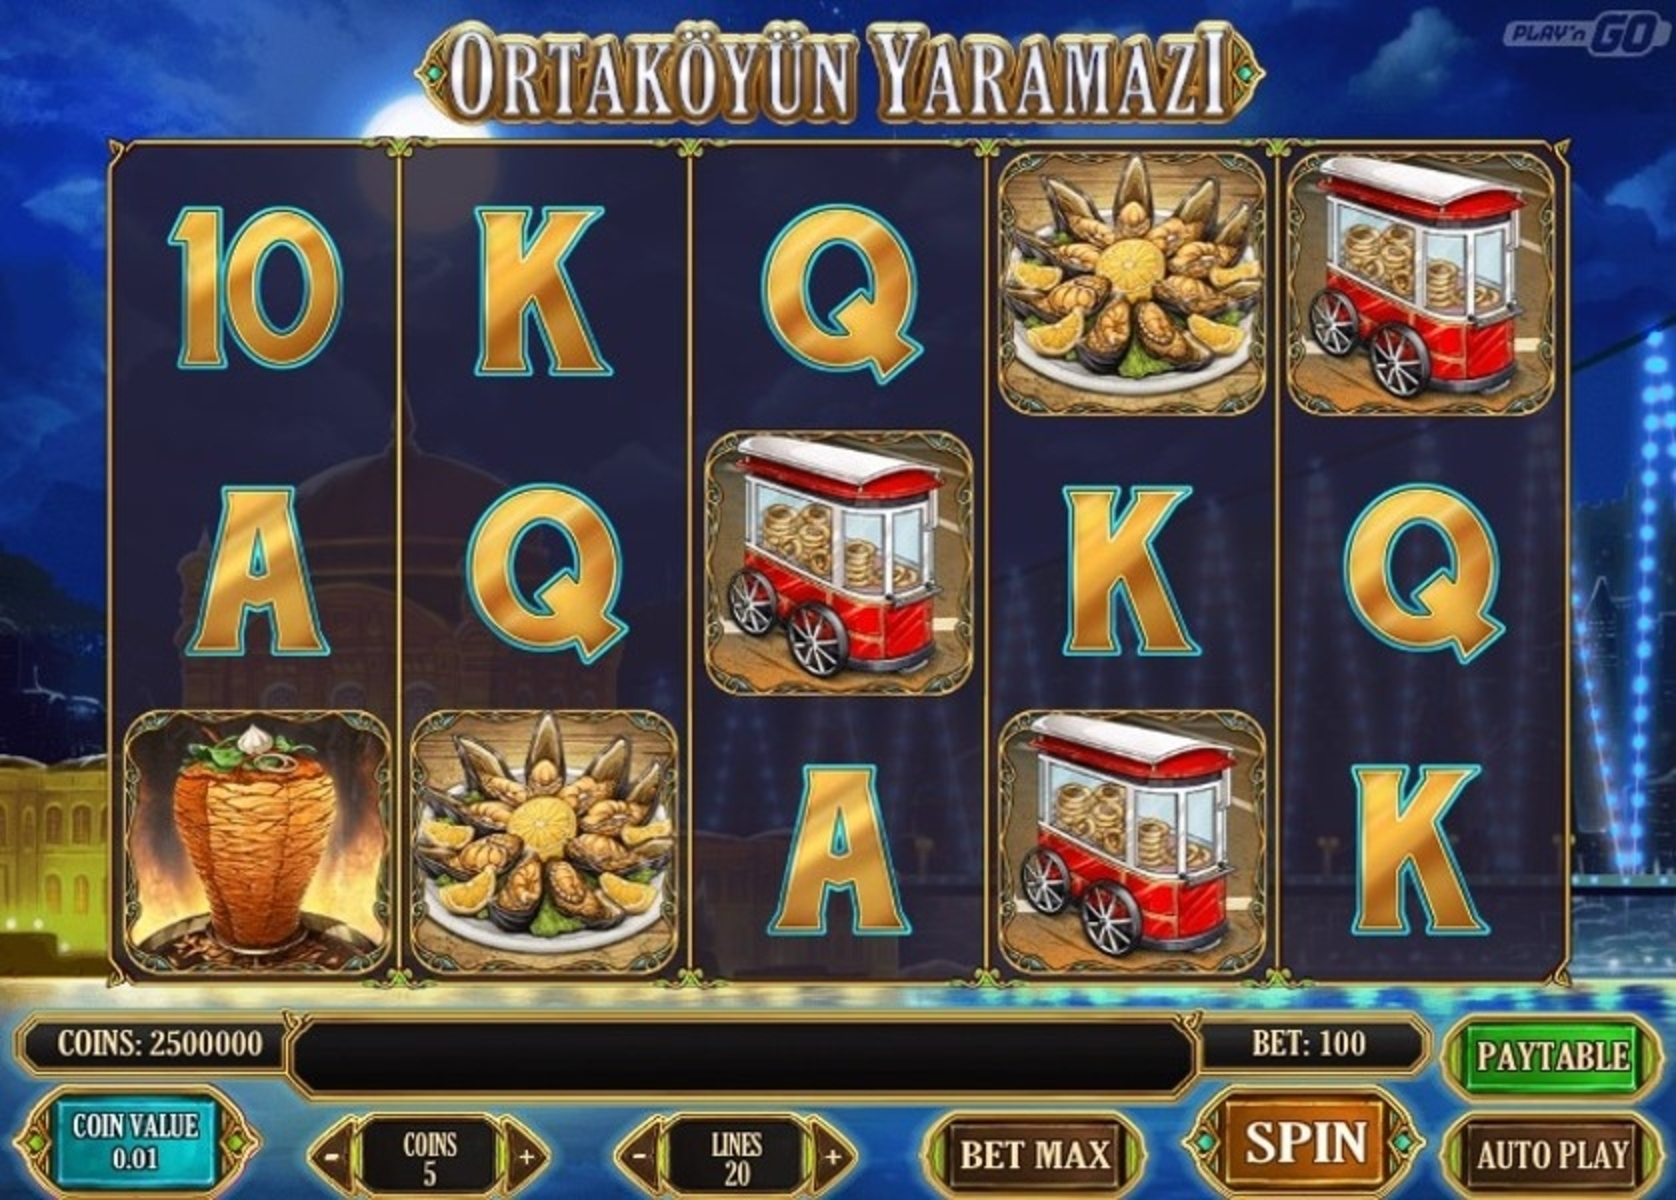 The Ortaköyün Yaramazi Online Slot Demo Game by Play'n Go